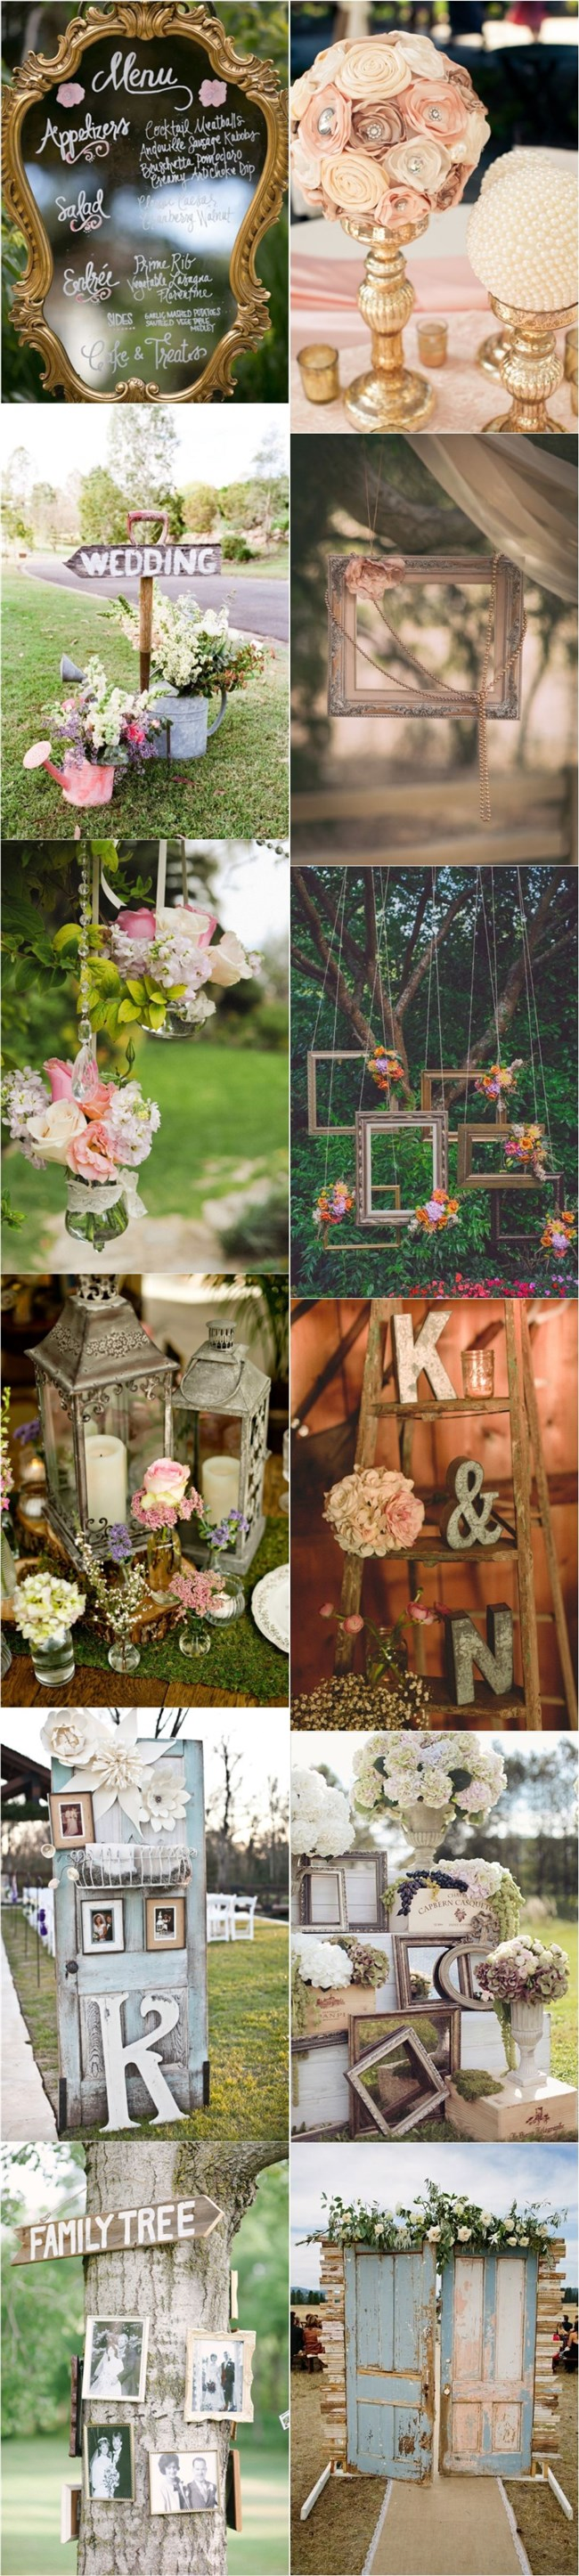 Fullsize Of Vintage Wedding Decorations